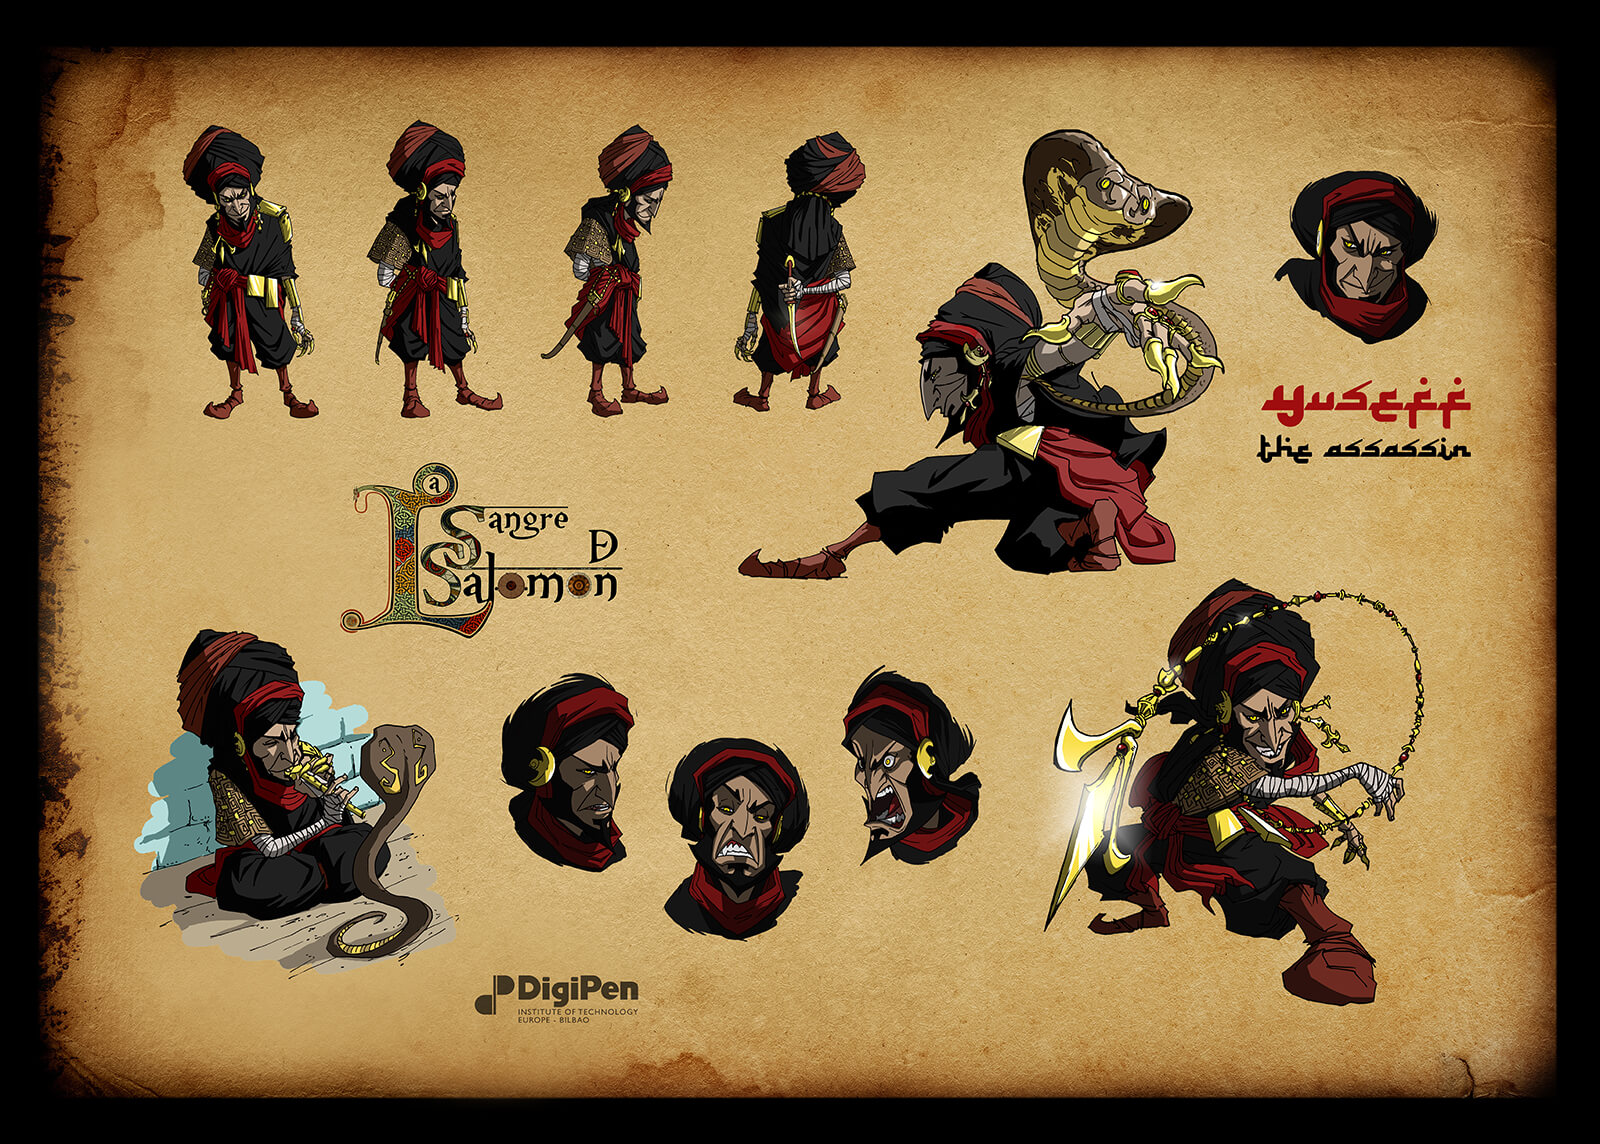 Concept paintings for a short, bearded assassin in black and red robes and turban in various poses with and without a snake